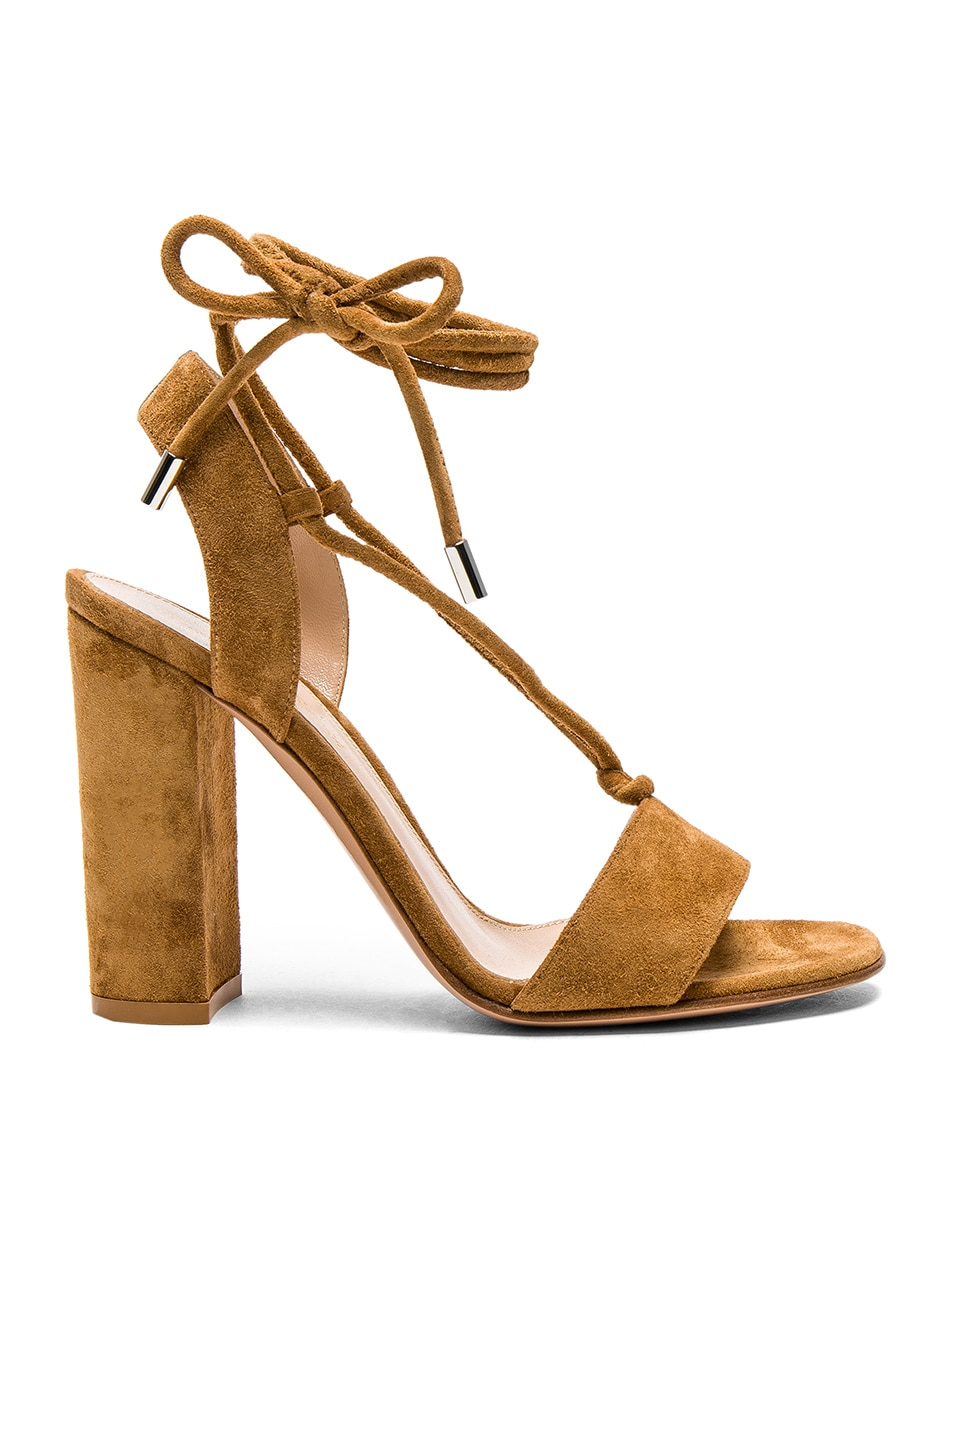 Image 1 of Gianvito Rossi Suede Lace Up Heels in Almond